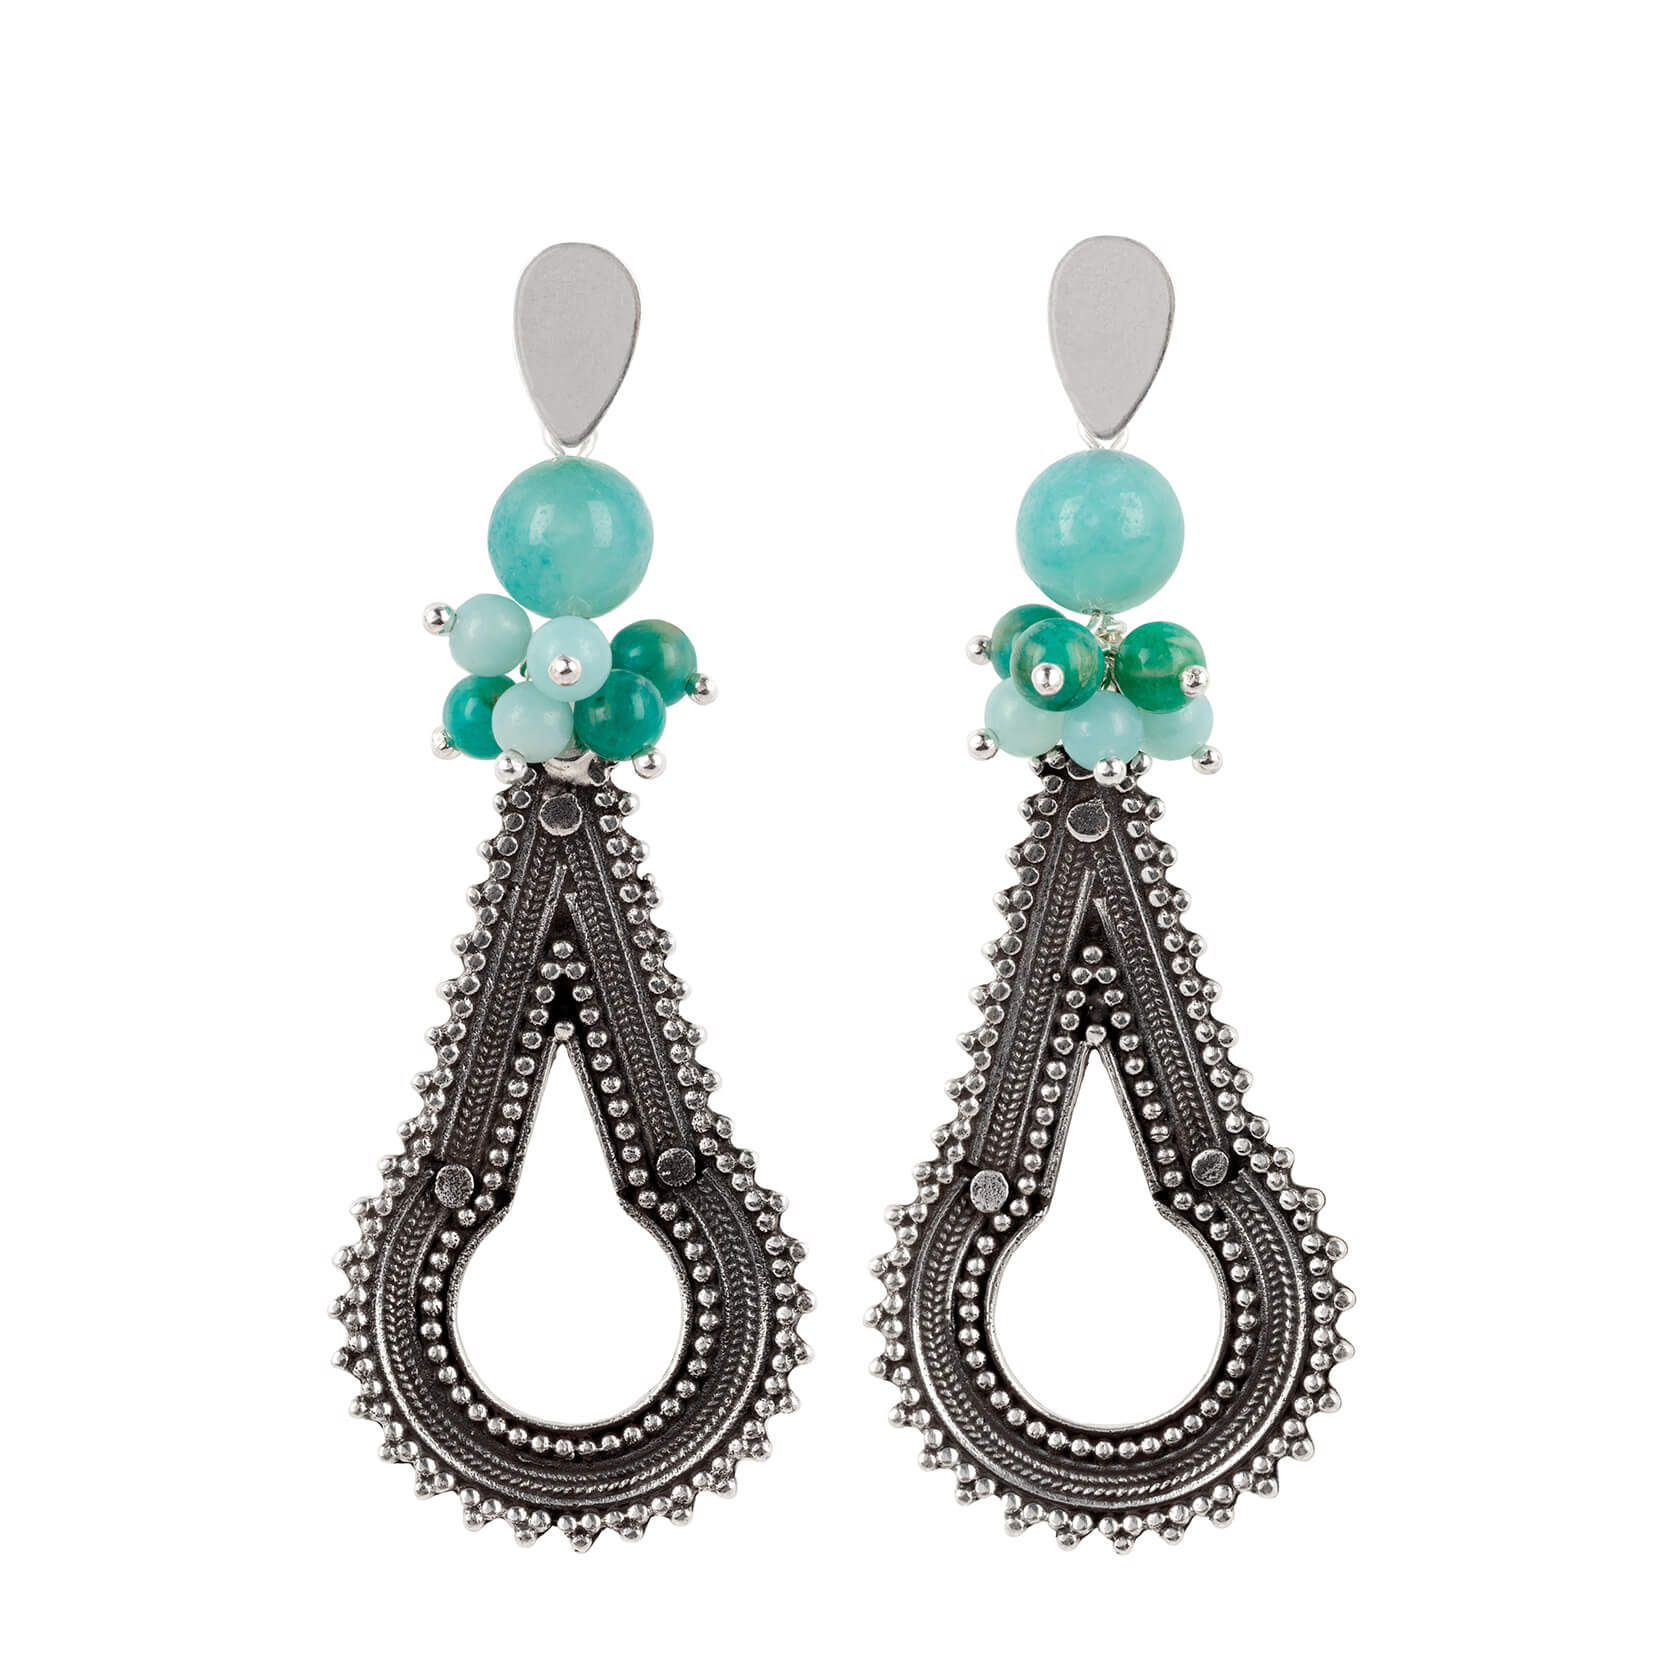 Drops Cora earrings